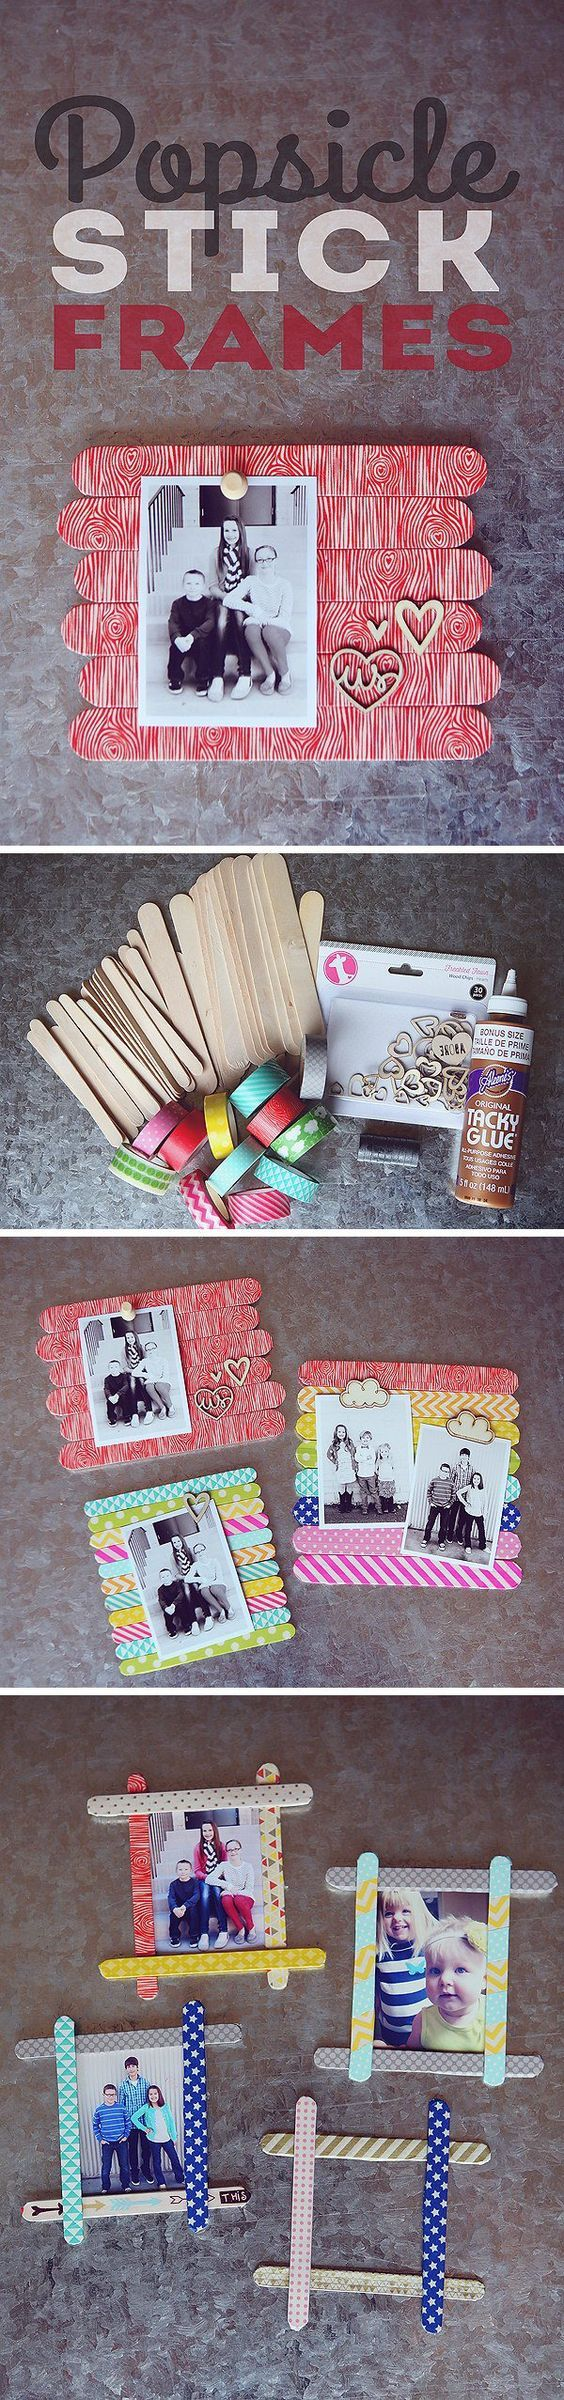 35 Creative Popsicle Stick Crafts